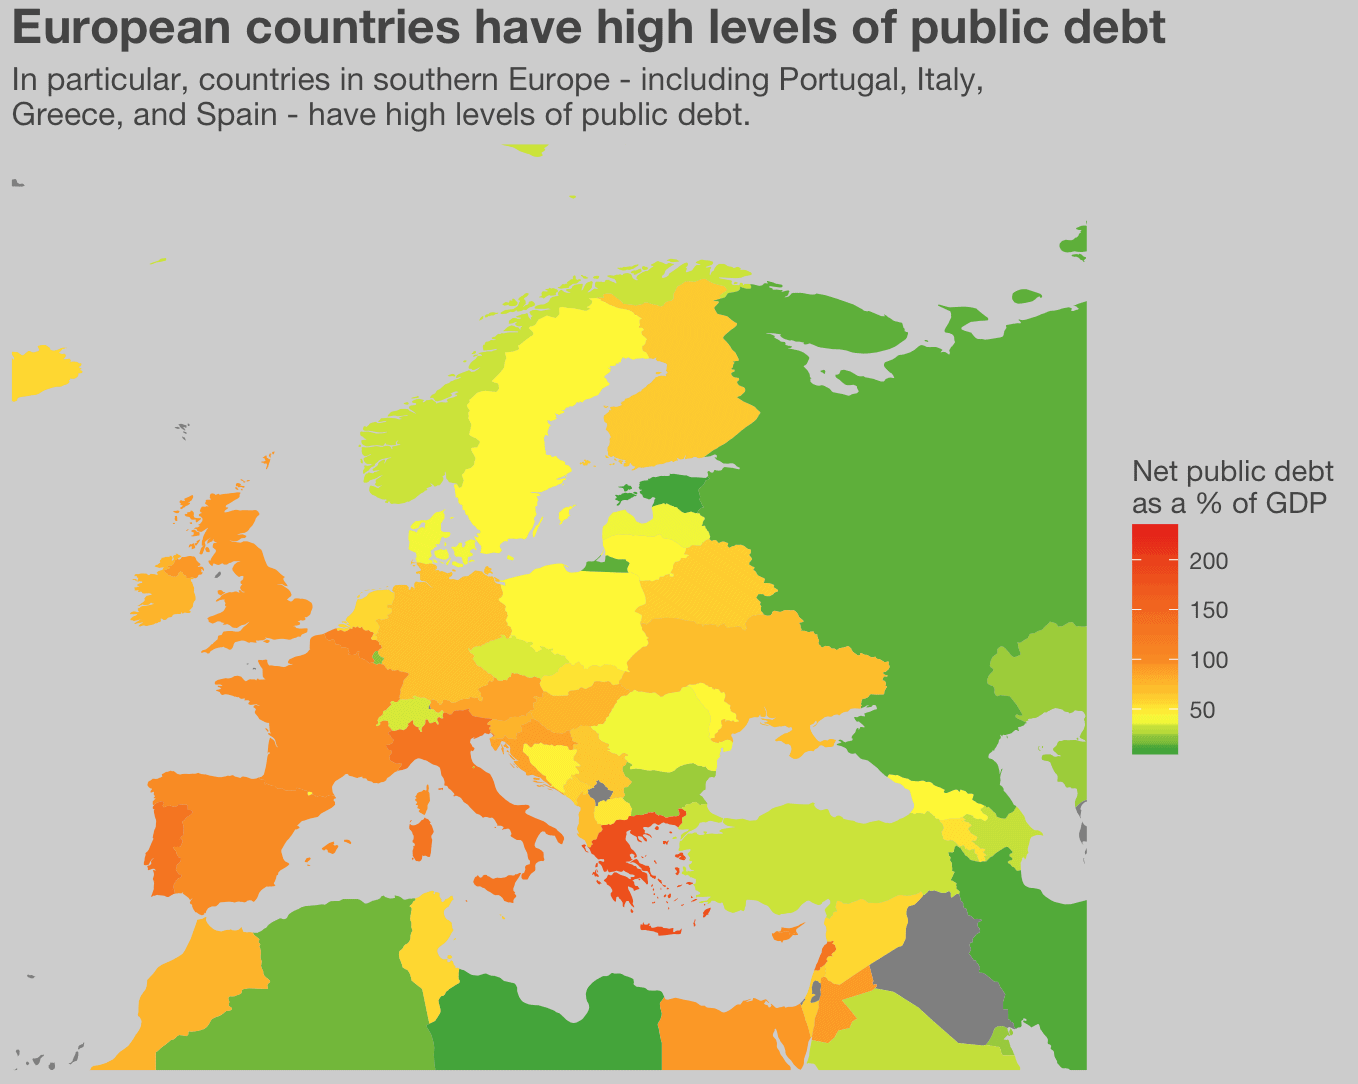 How to map public debt data with ggplot2 | R-bloggers